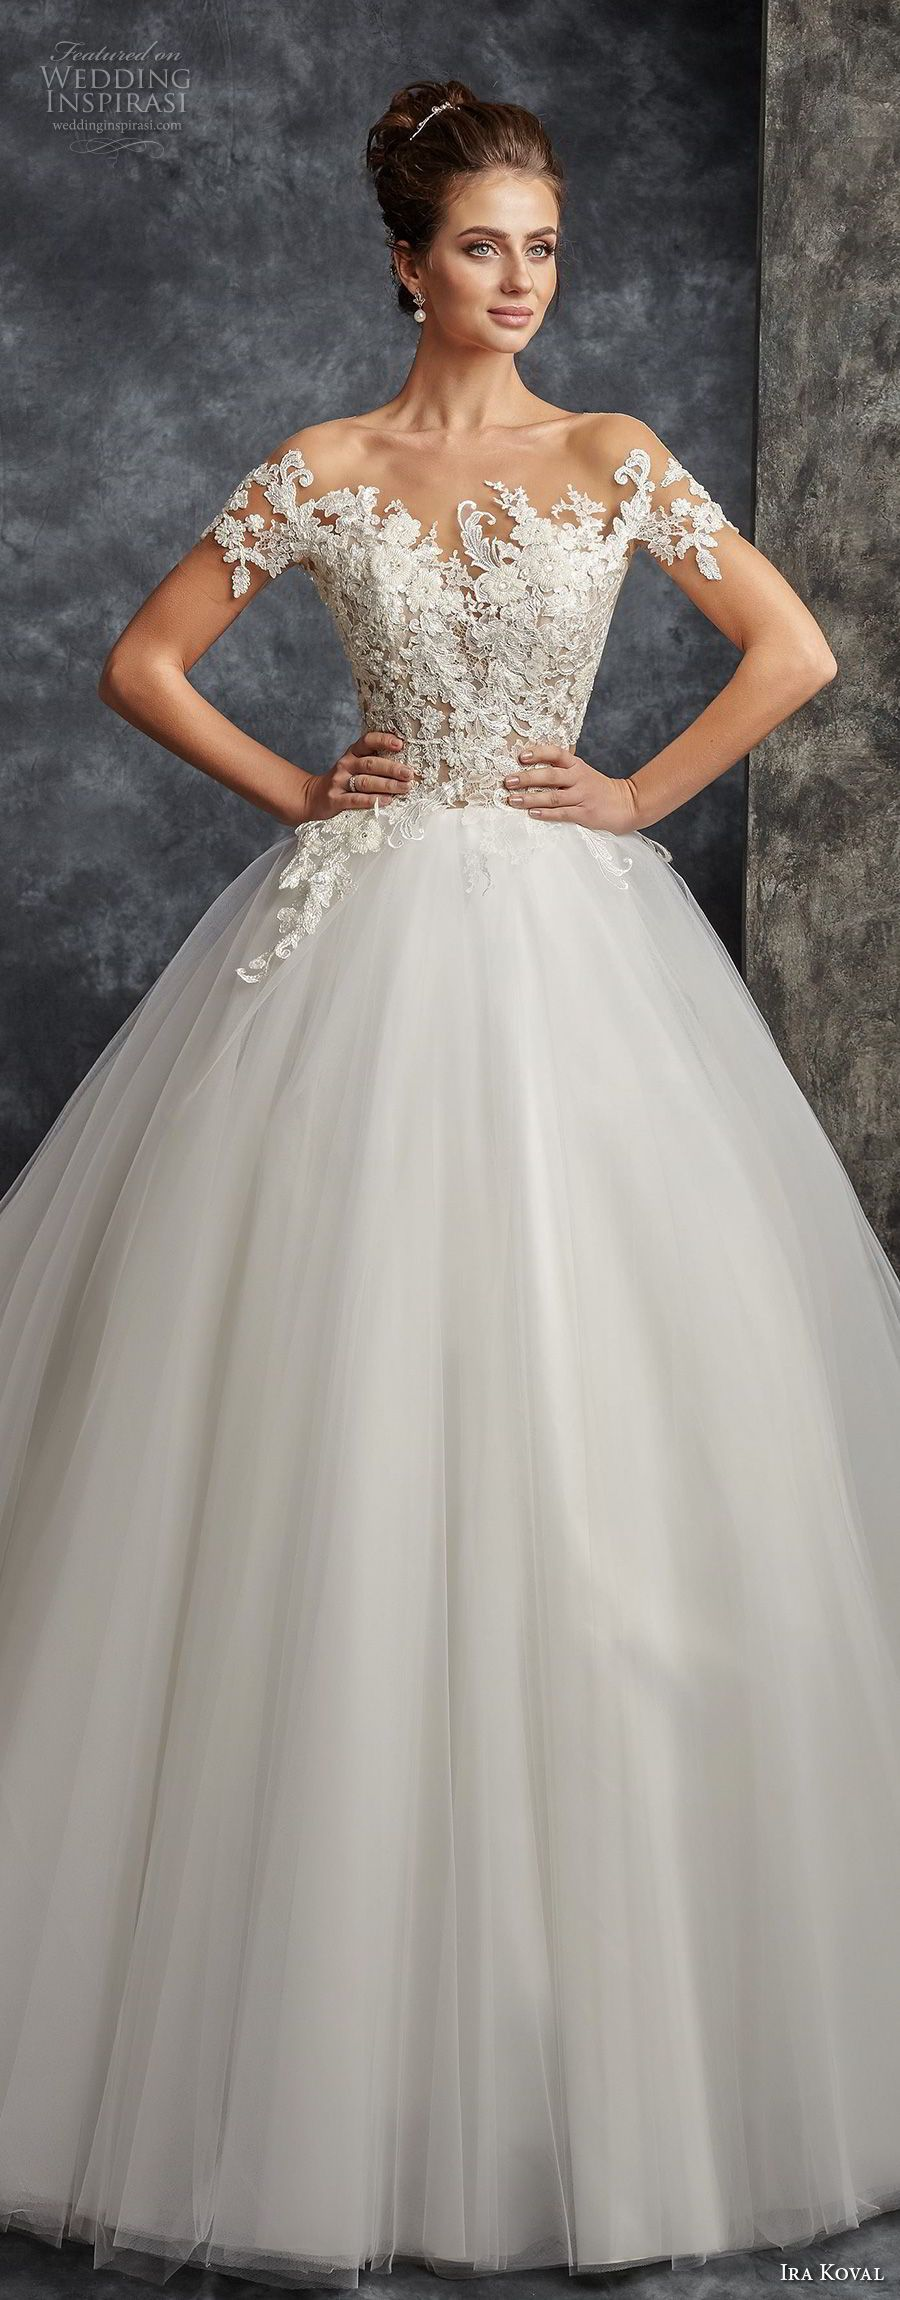 Ira koval wedding dresses chapel train ball gowns and bodice